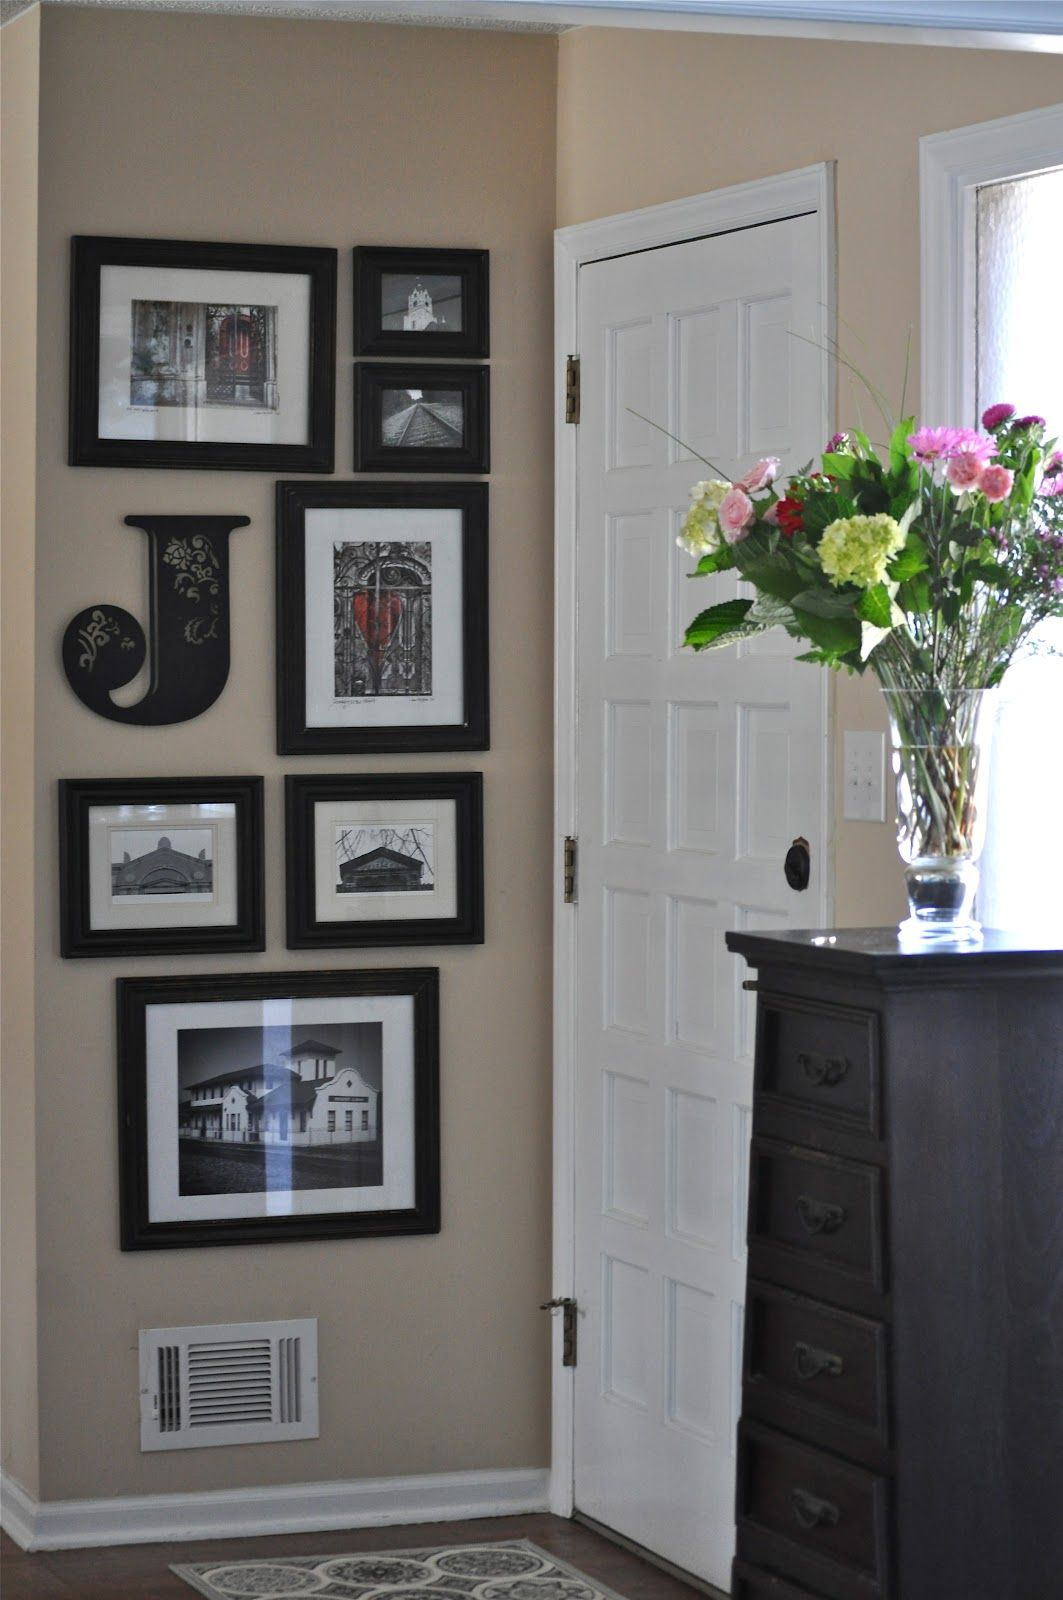 Our southern table creating an entry way 2018 home inspiration wall decor our southern table creating an entry way amipublicfo Images